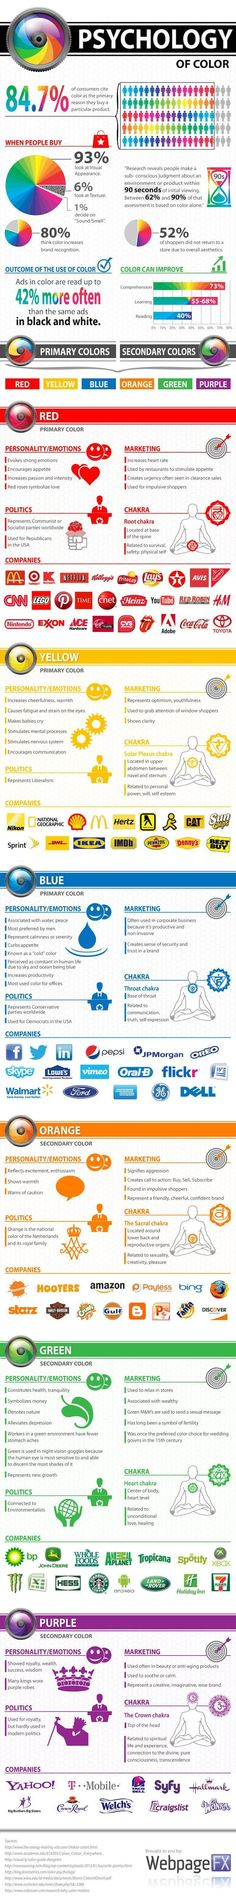 The Psychology of Color: How It Affects the Way We Buy